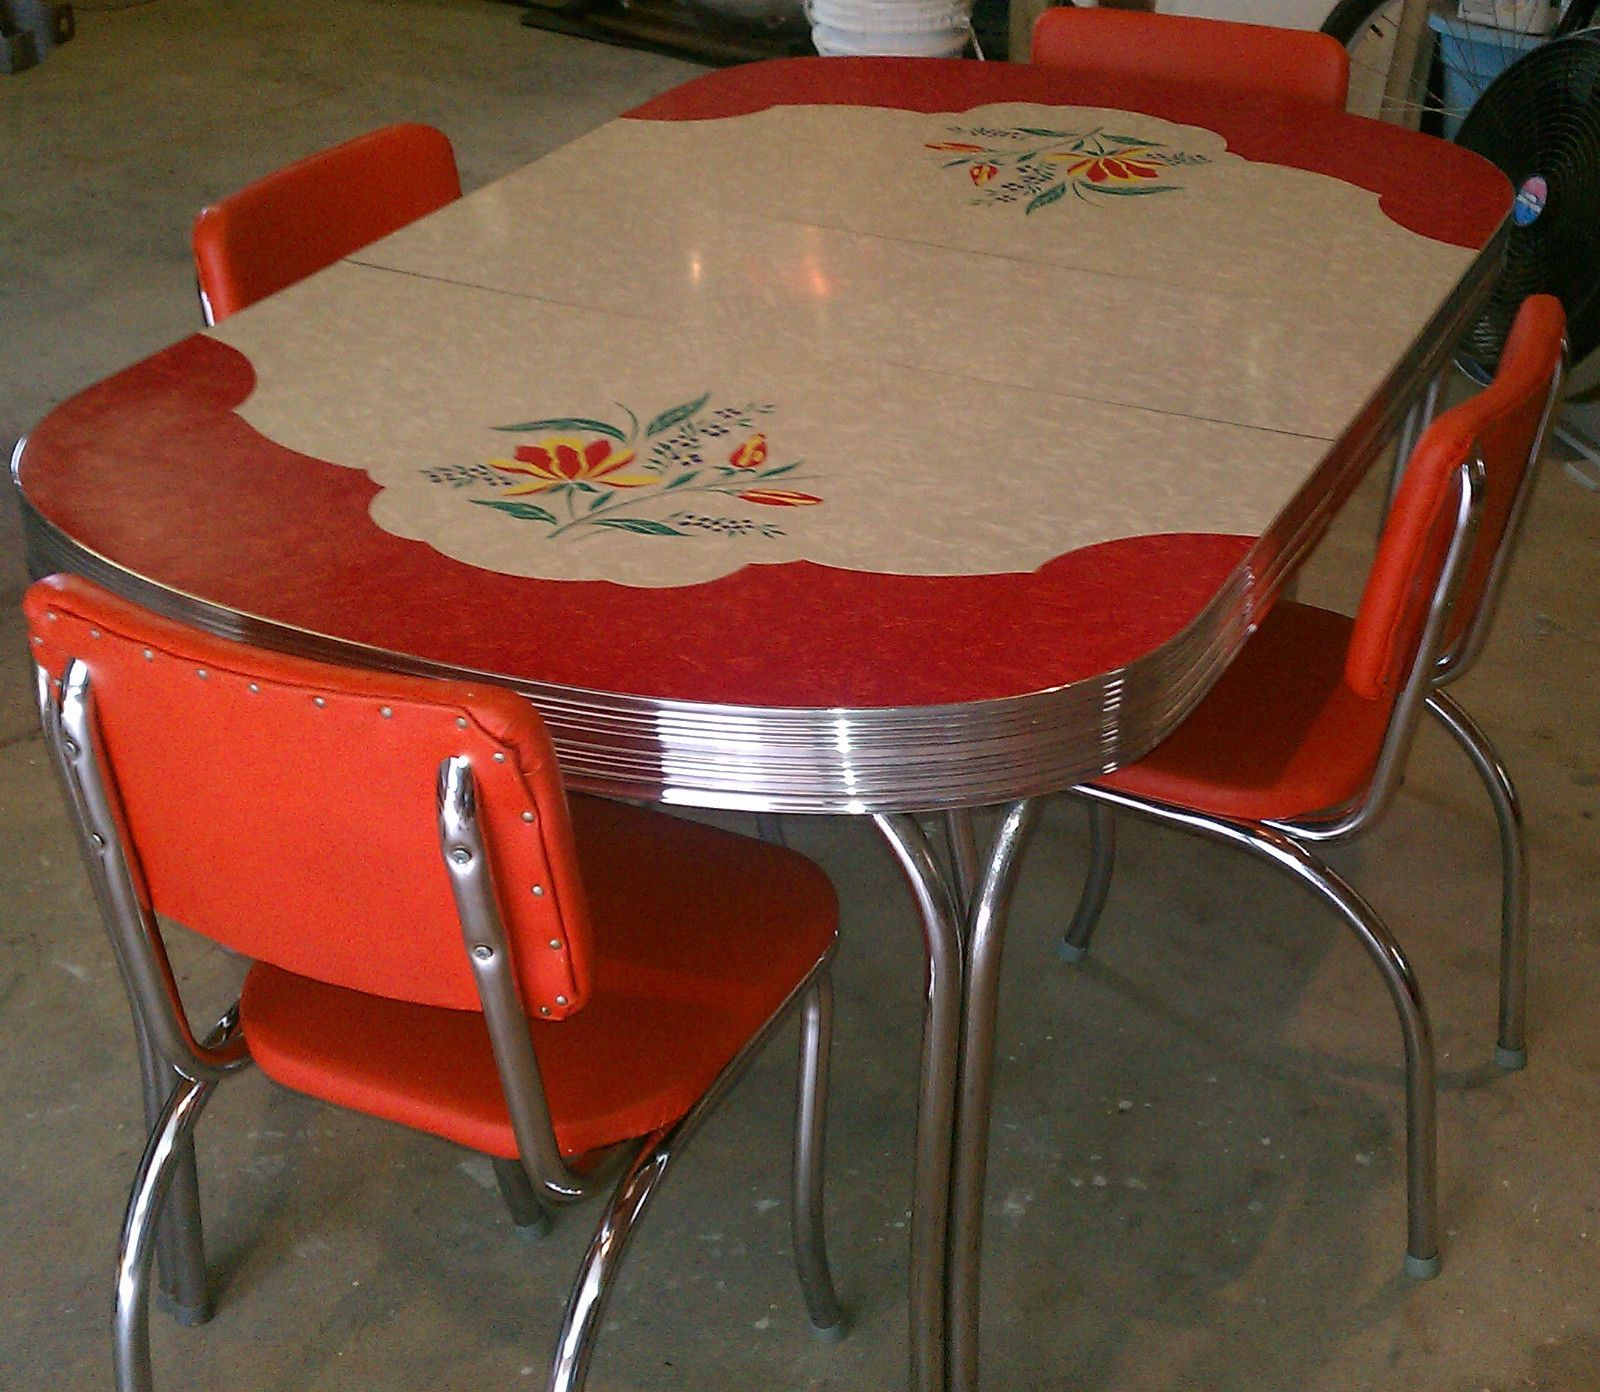 Delicieux Love This Table! Vintage Kitchen Formica Table 4 Chairs Chrome Orange Red  White/Gray